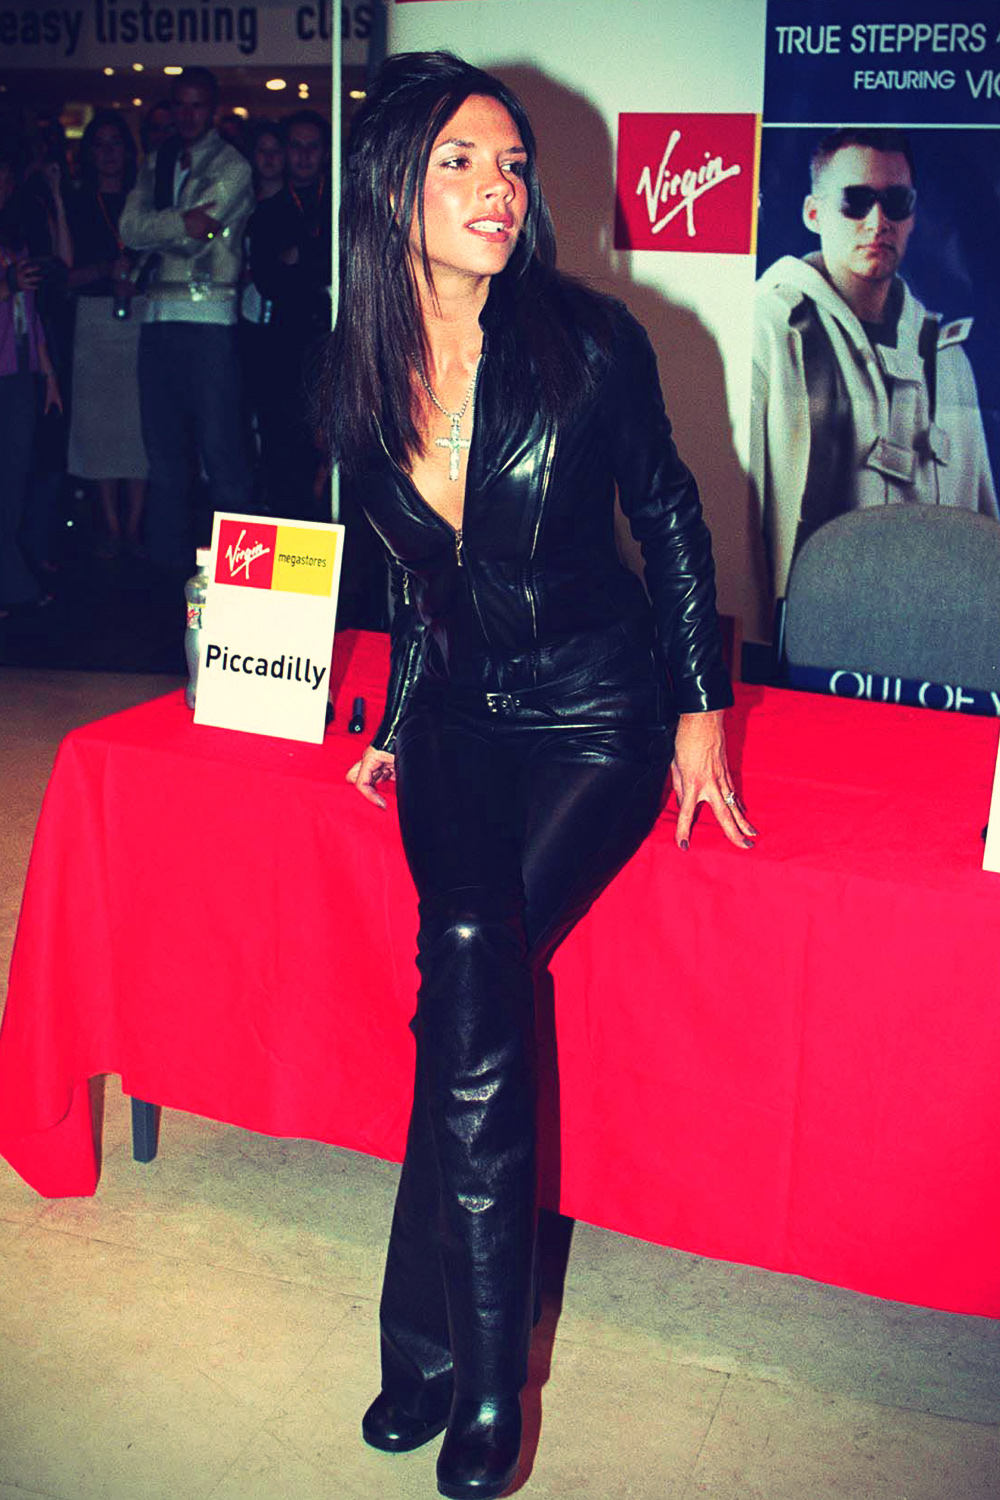 Victoria Beckham in leather outfits